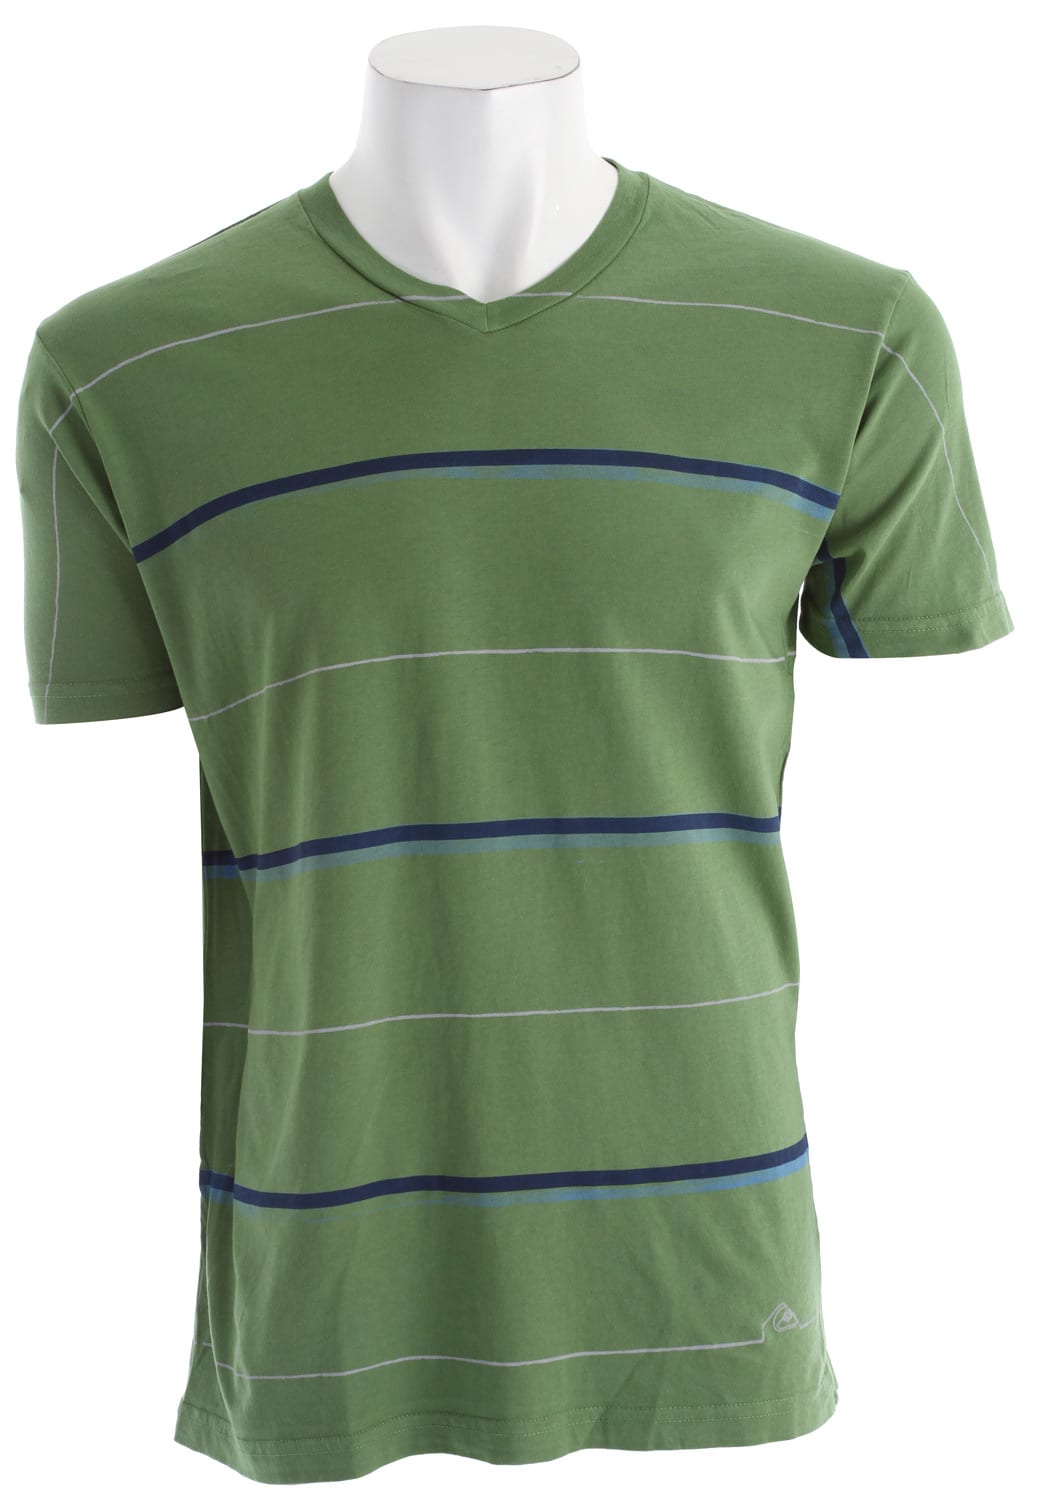 Shop for Quiksilver Loading Zone Shirt Grasshopper - Men's